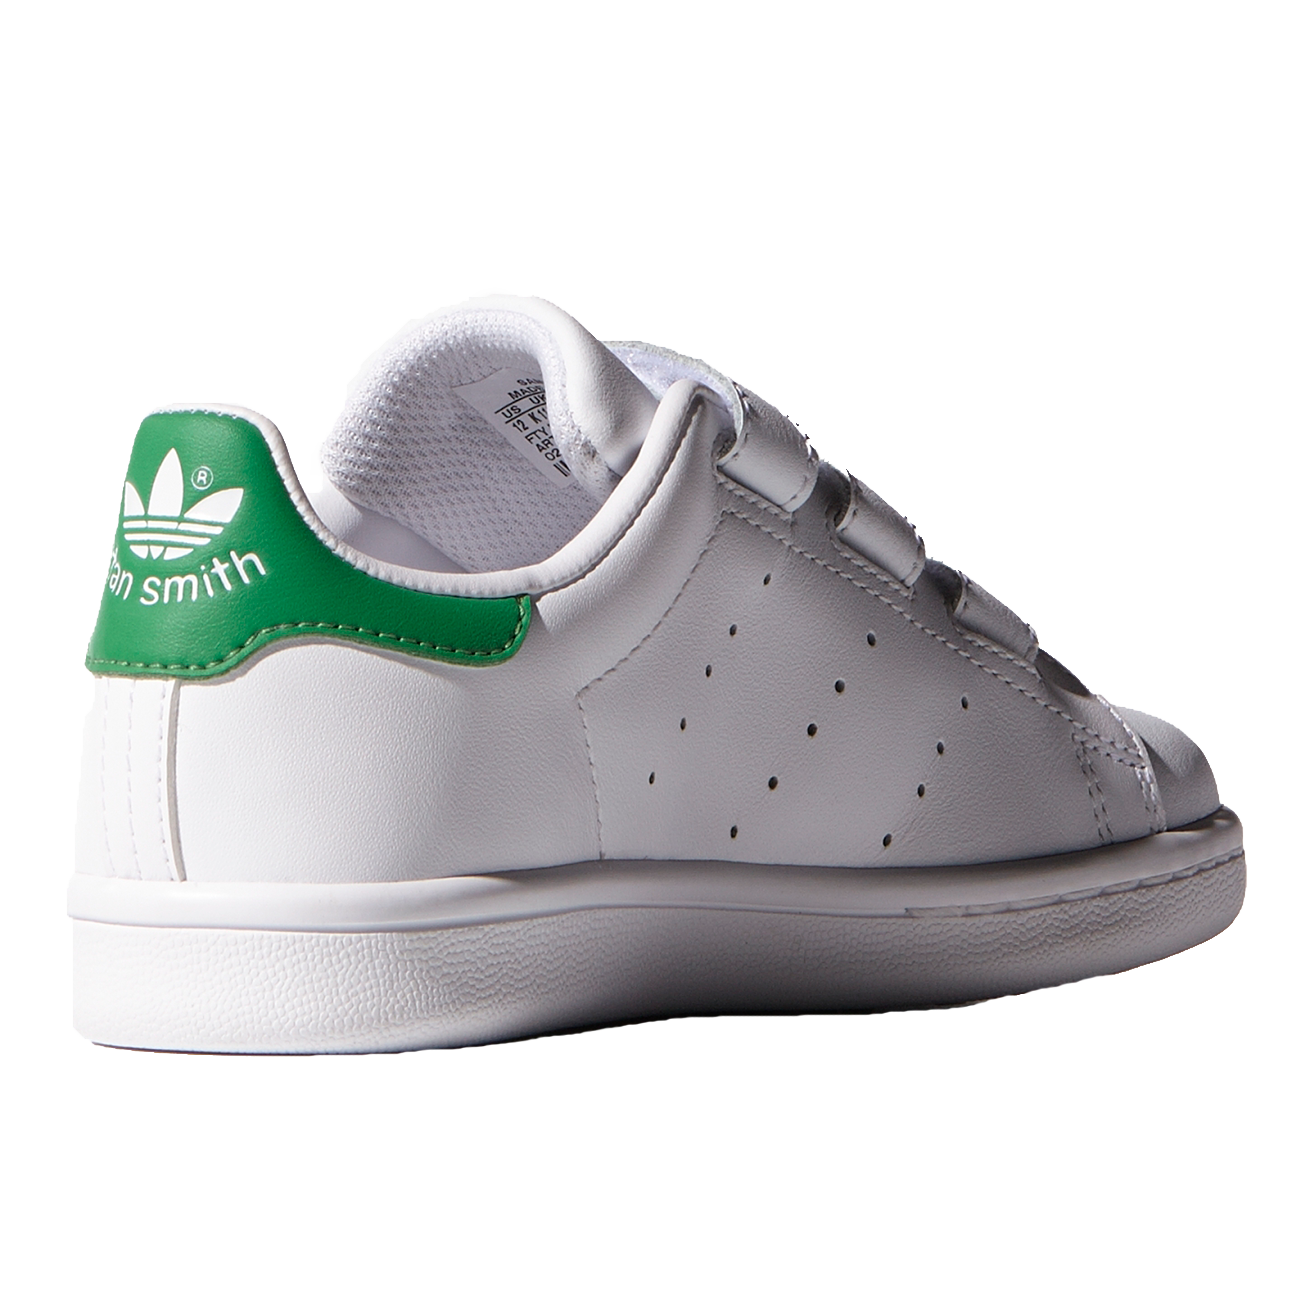 660f37cac5e1 adidas Stan Smith Sneakers White Green M20607